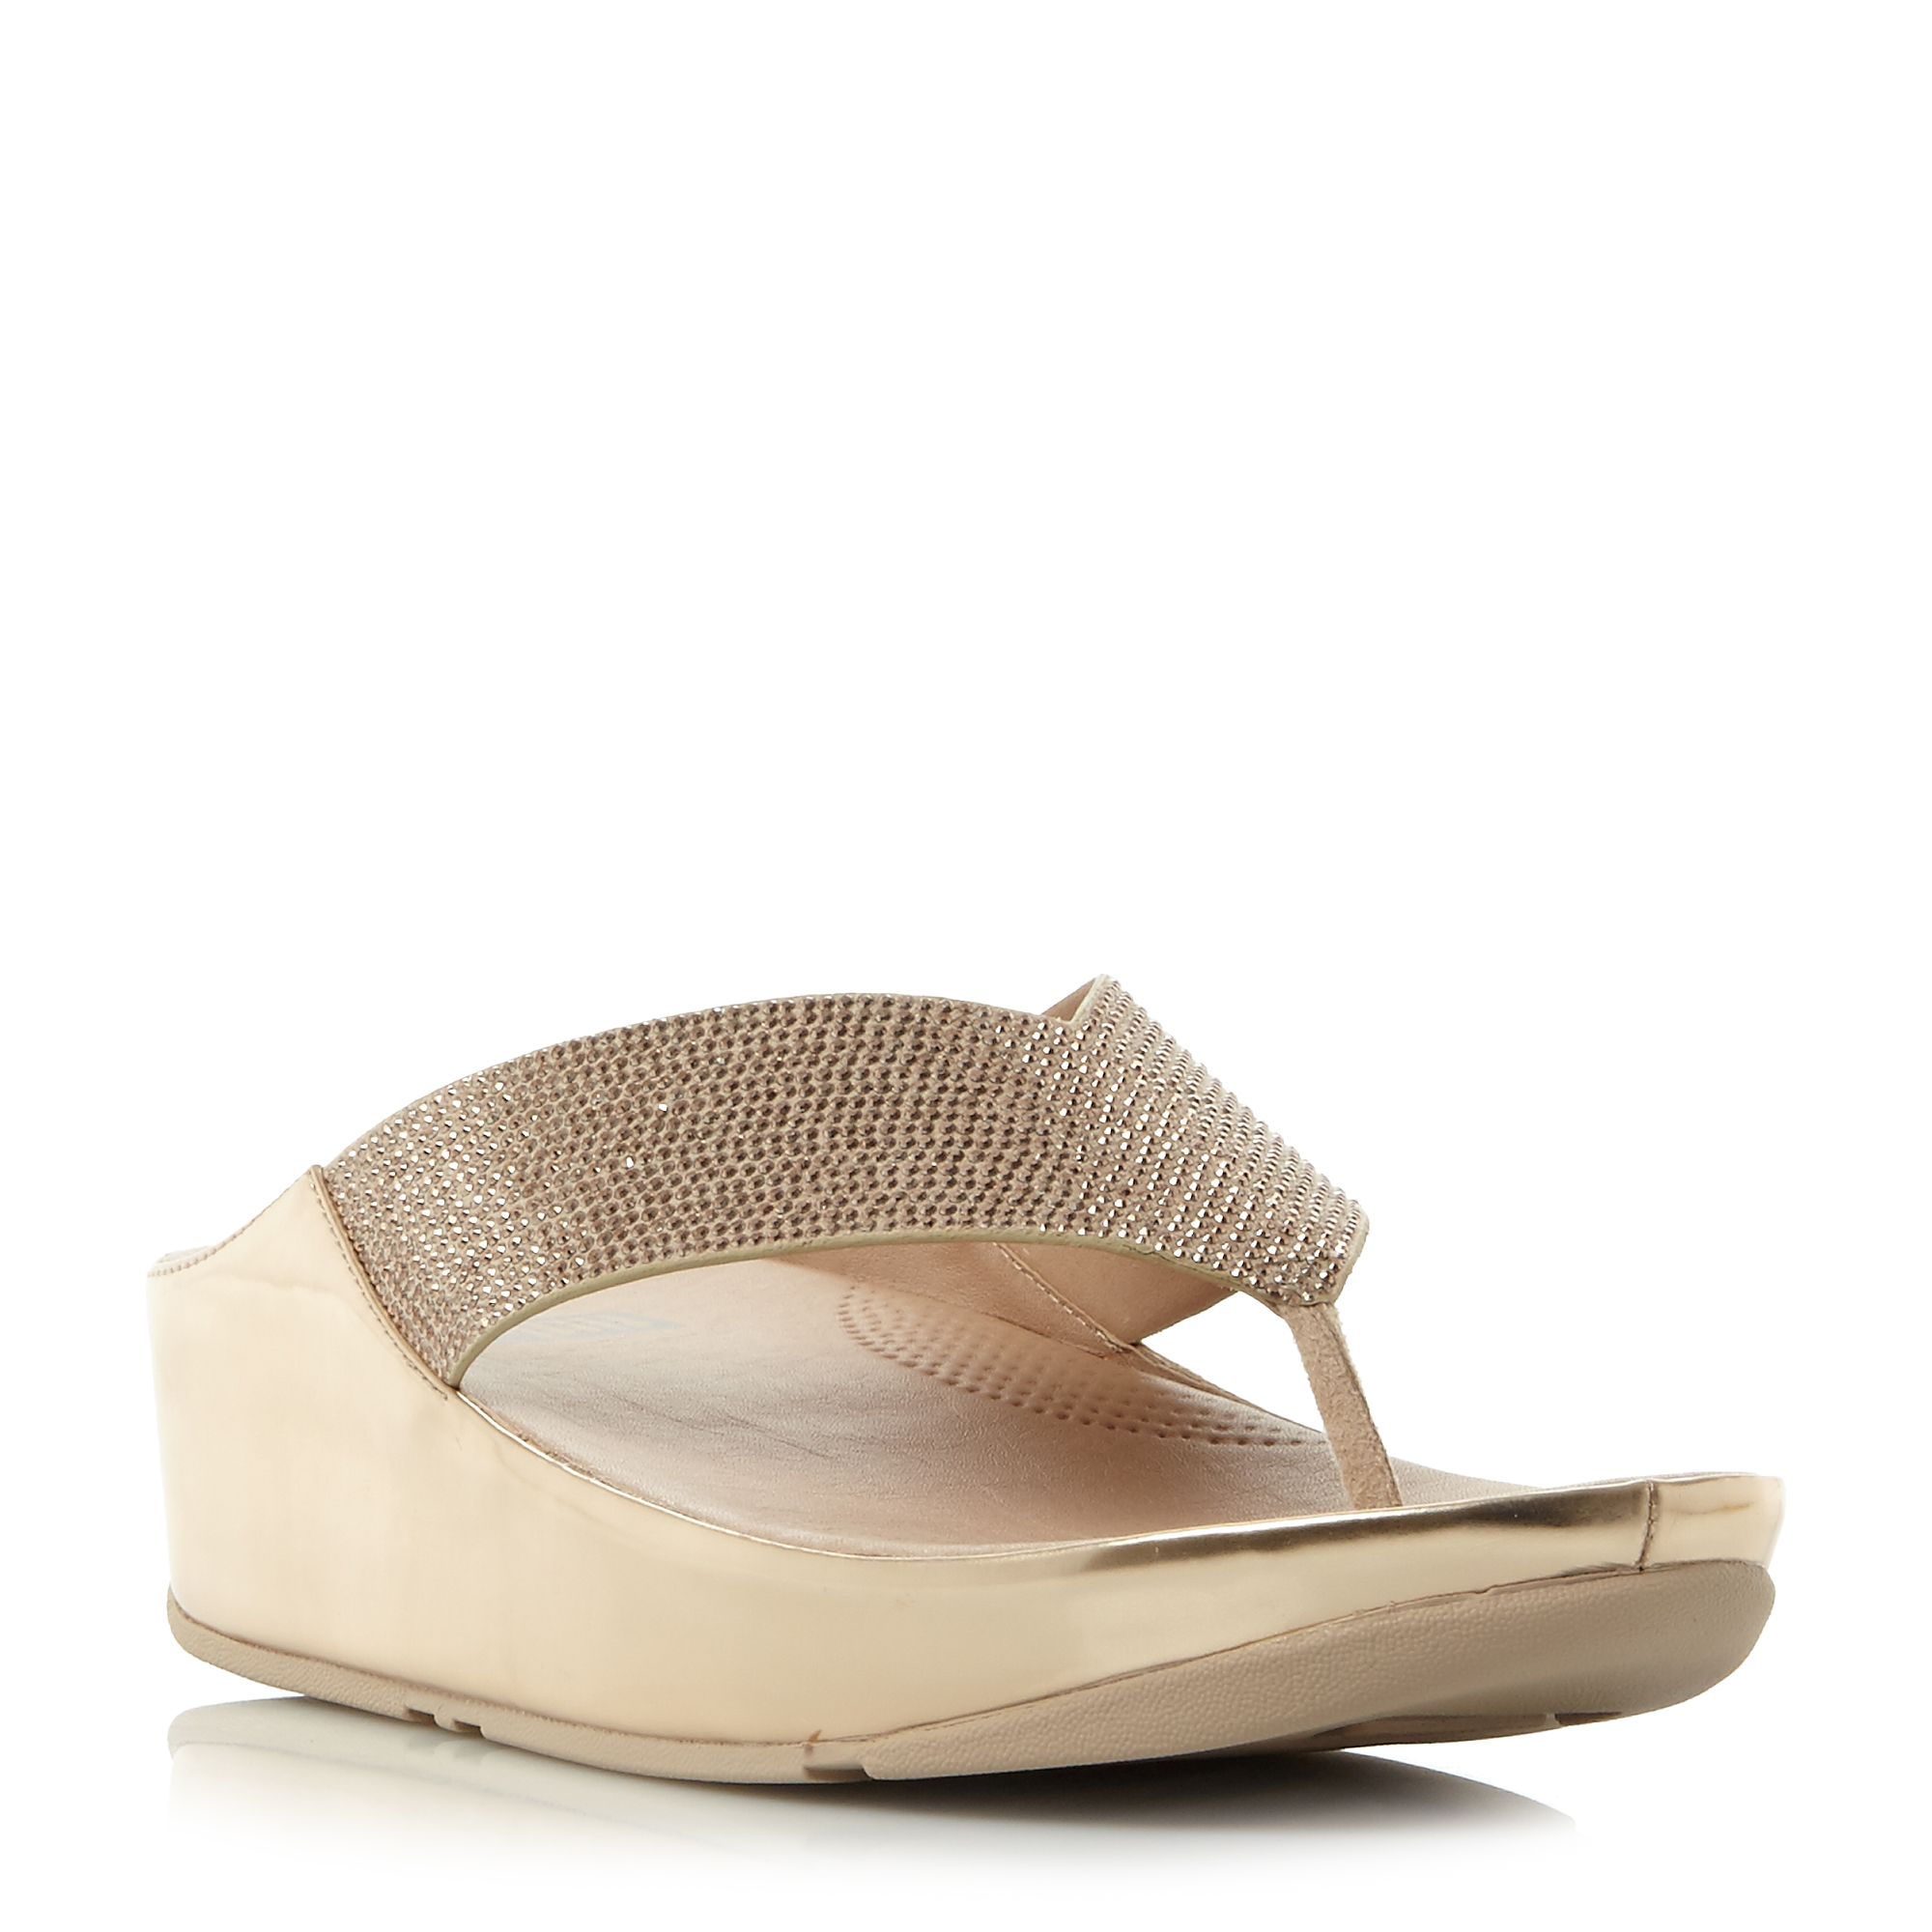 FitFlop Crystall Toepost Sandals, Rose Gold